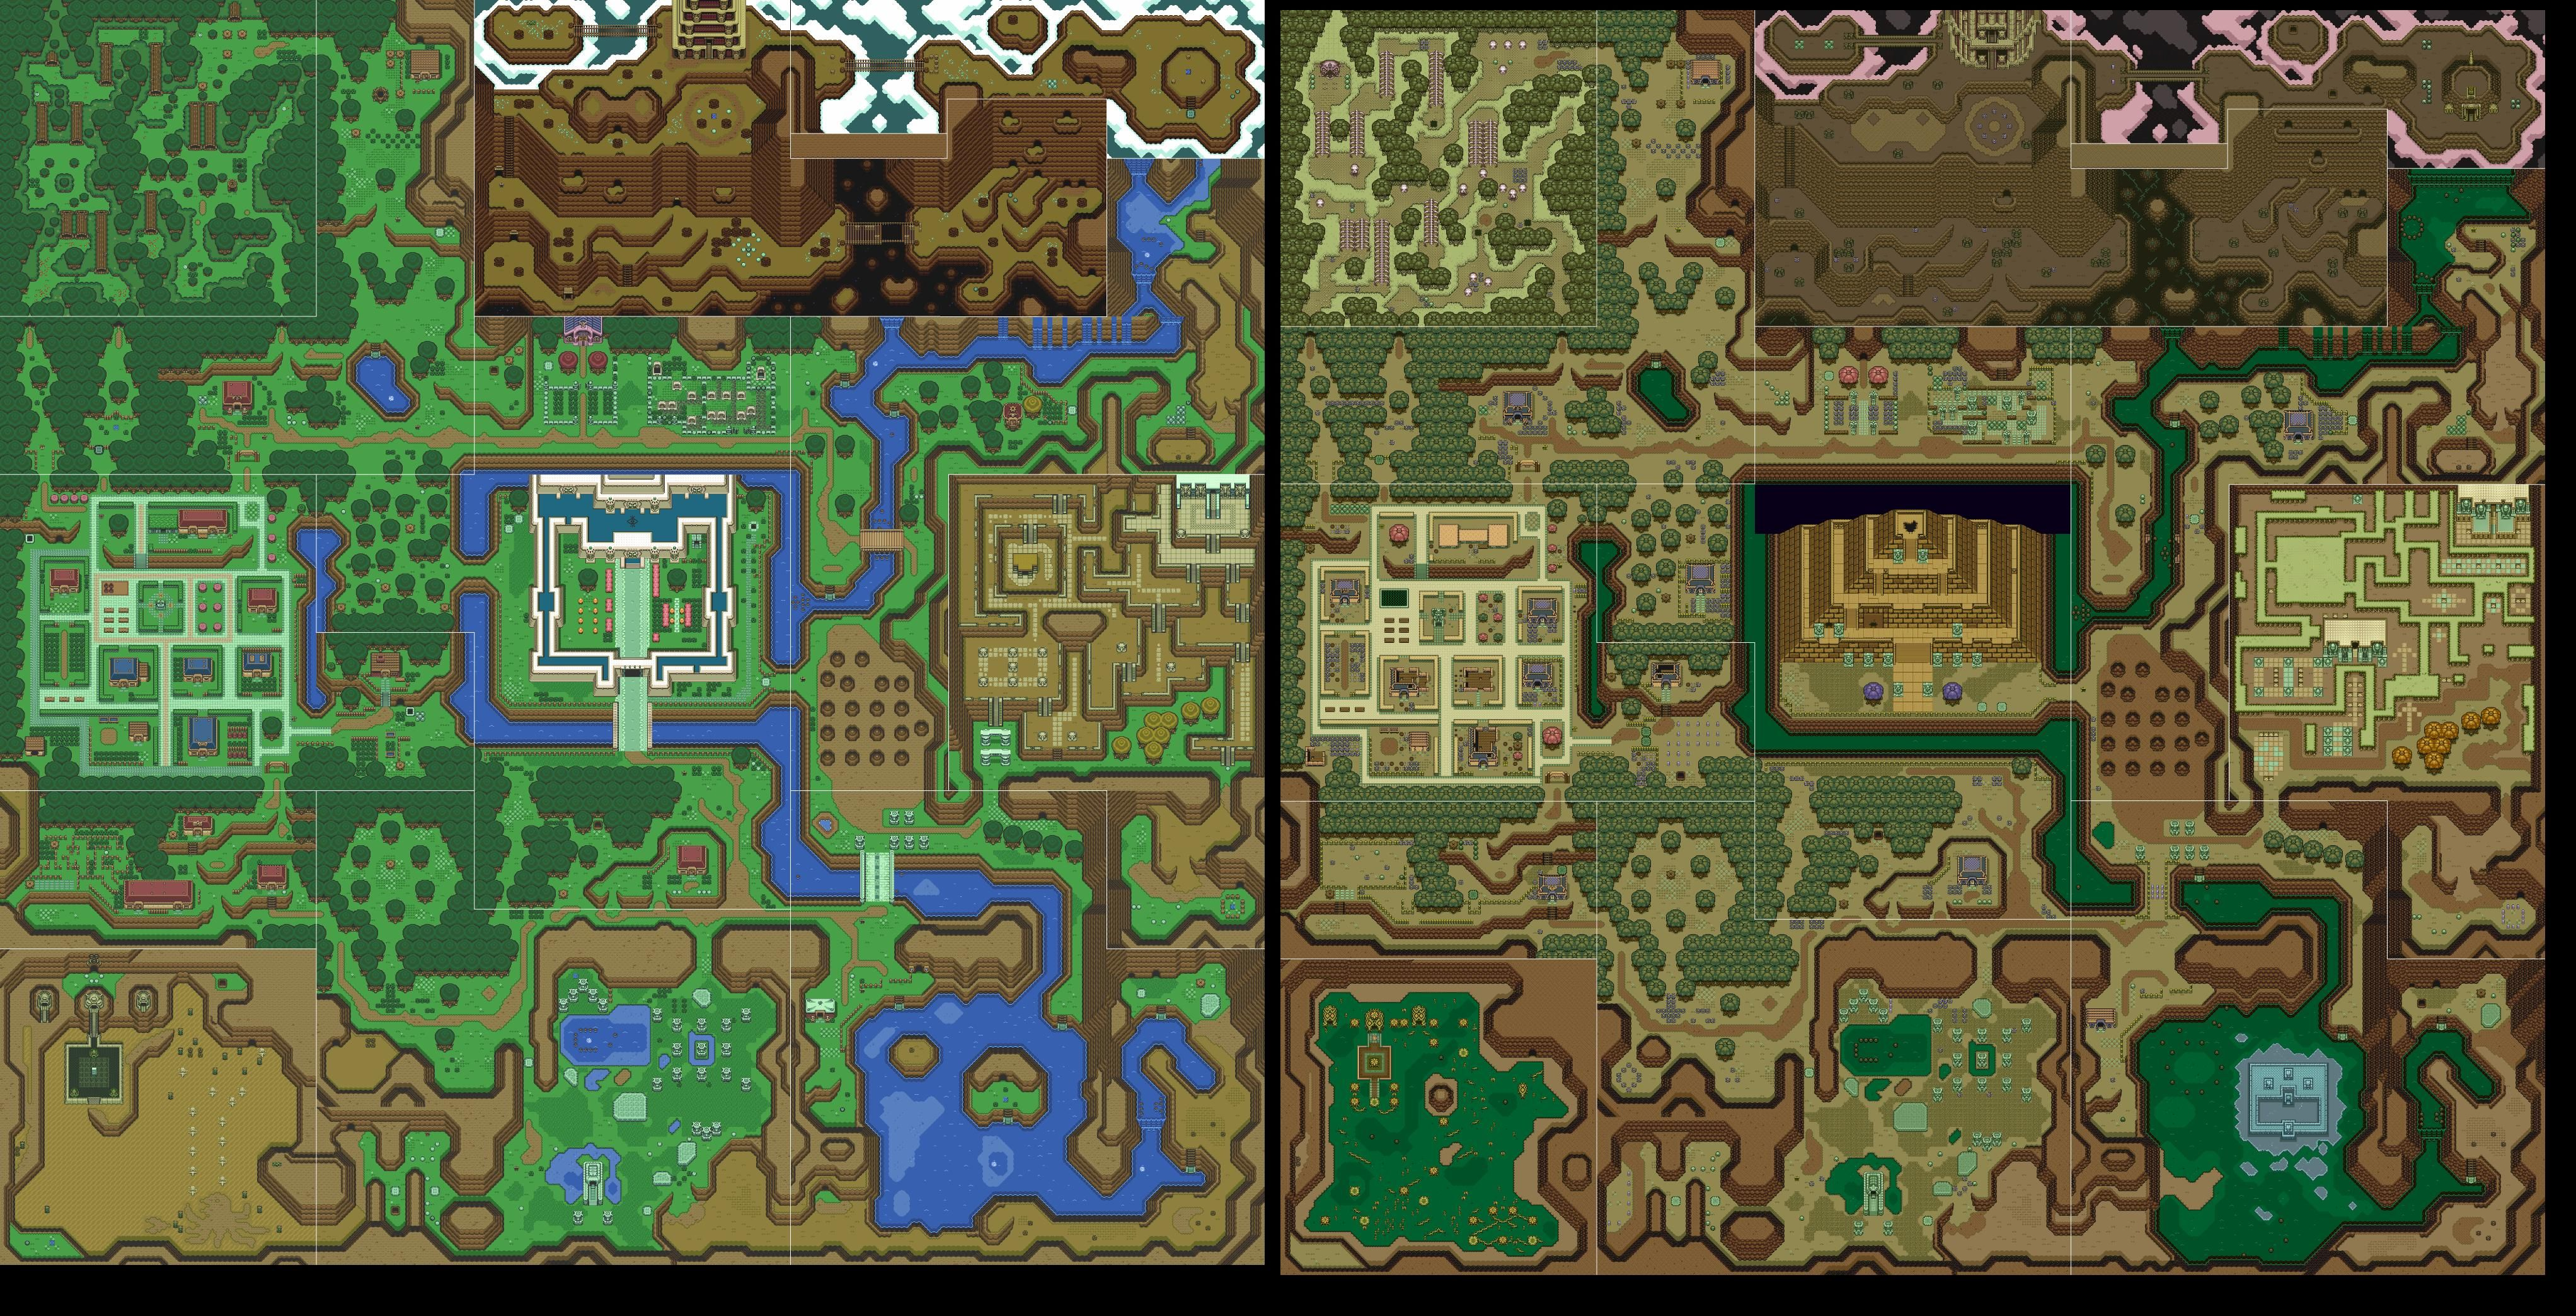 My Piece Of Art For Cpe 123 It Is The Map For An Old Nintendo Game Called Legend Of Zelda A Link To The Past Which Was One Of The First Games I